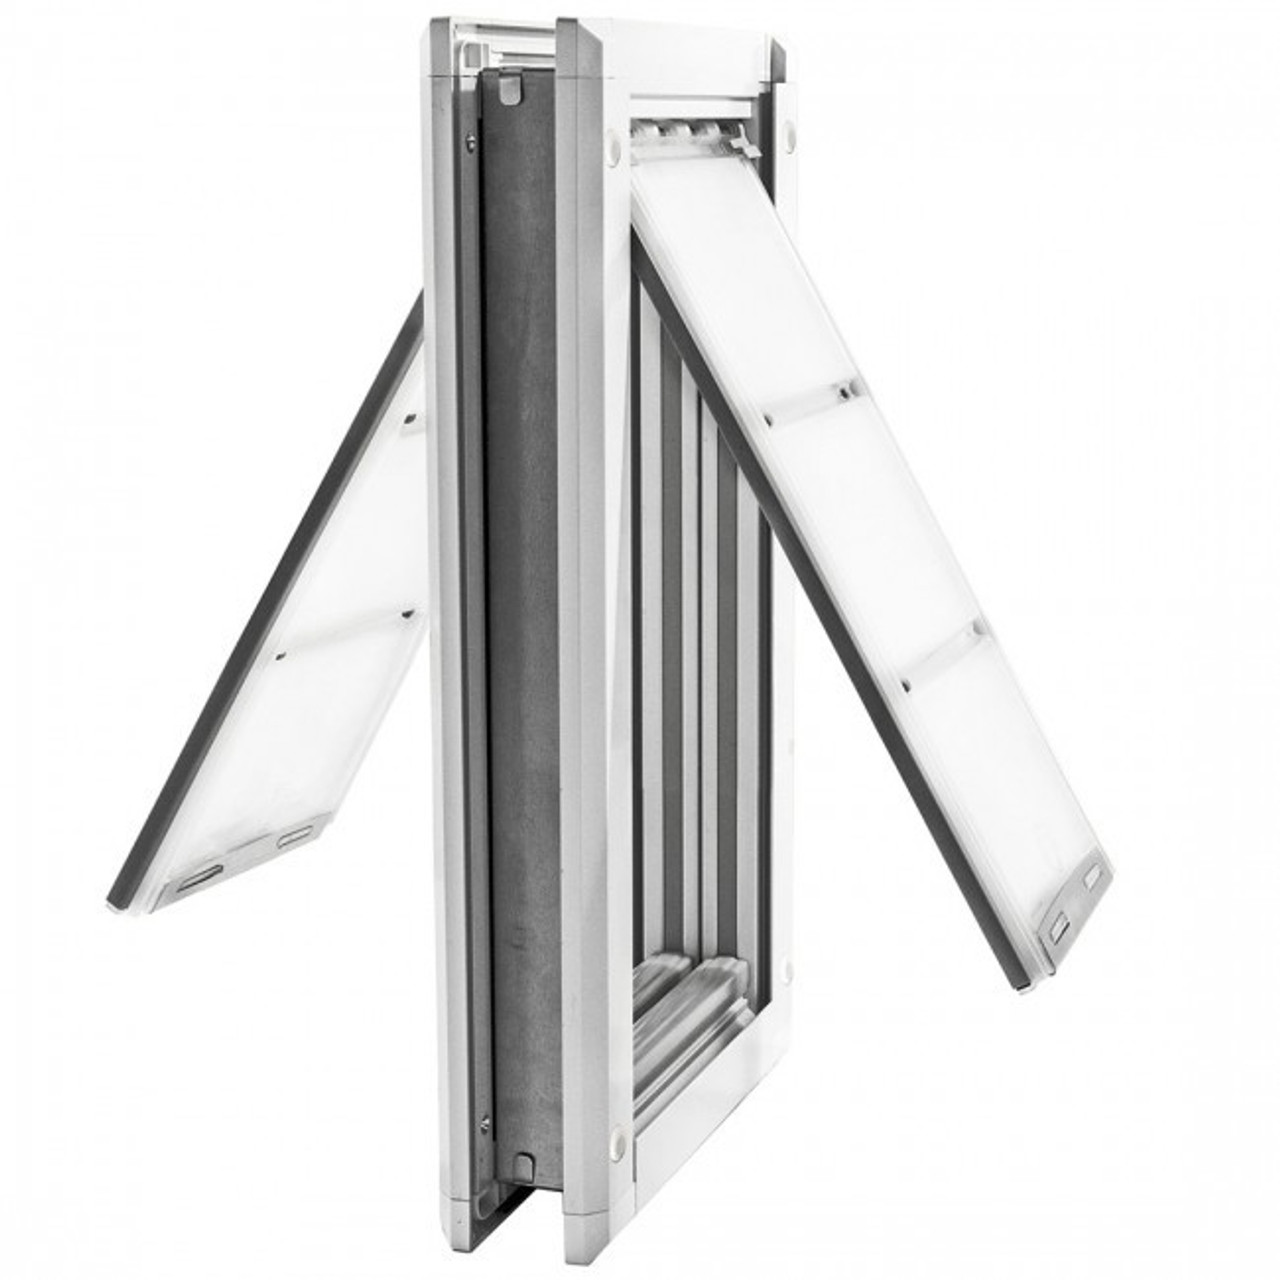 Endura Flap doggy doors are extremely high quality and long lasting